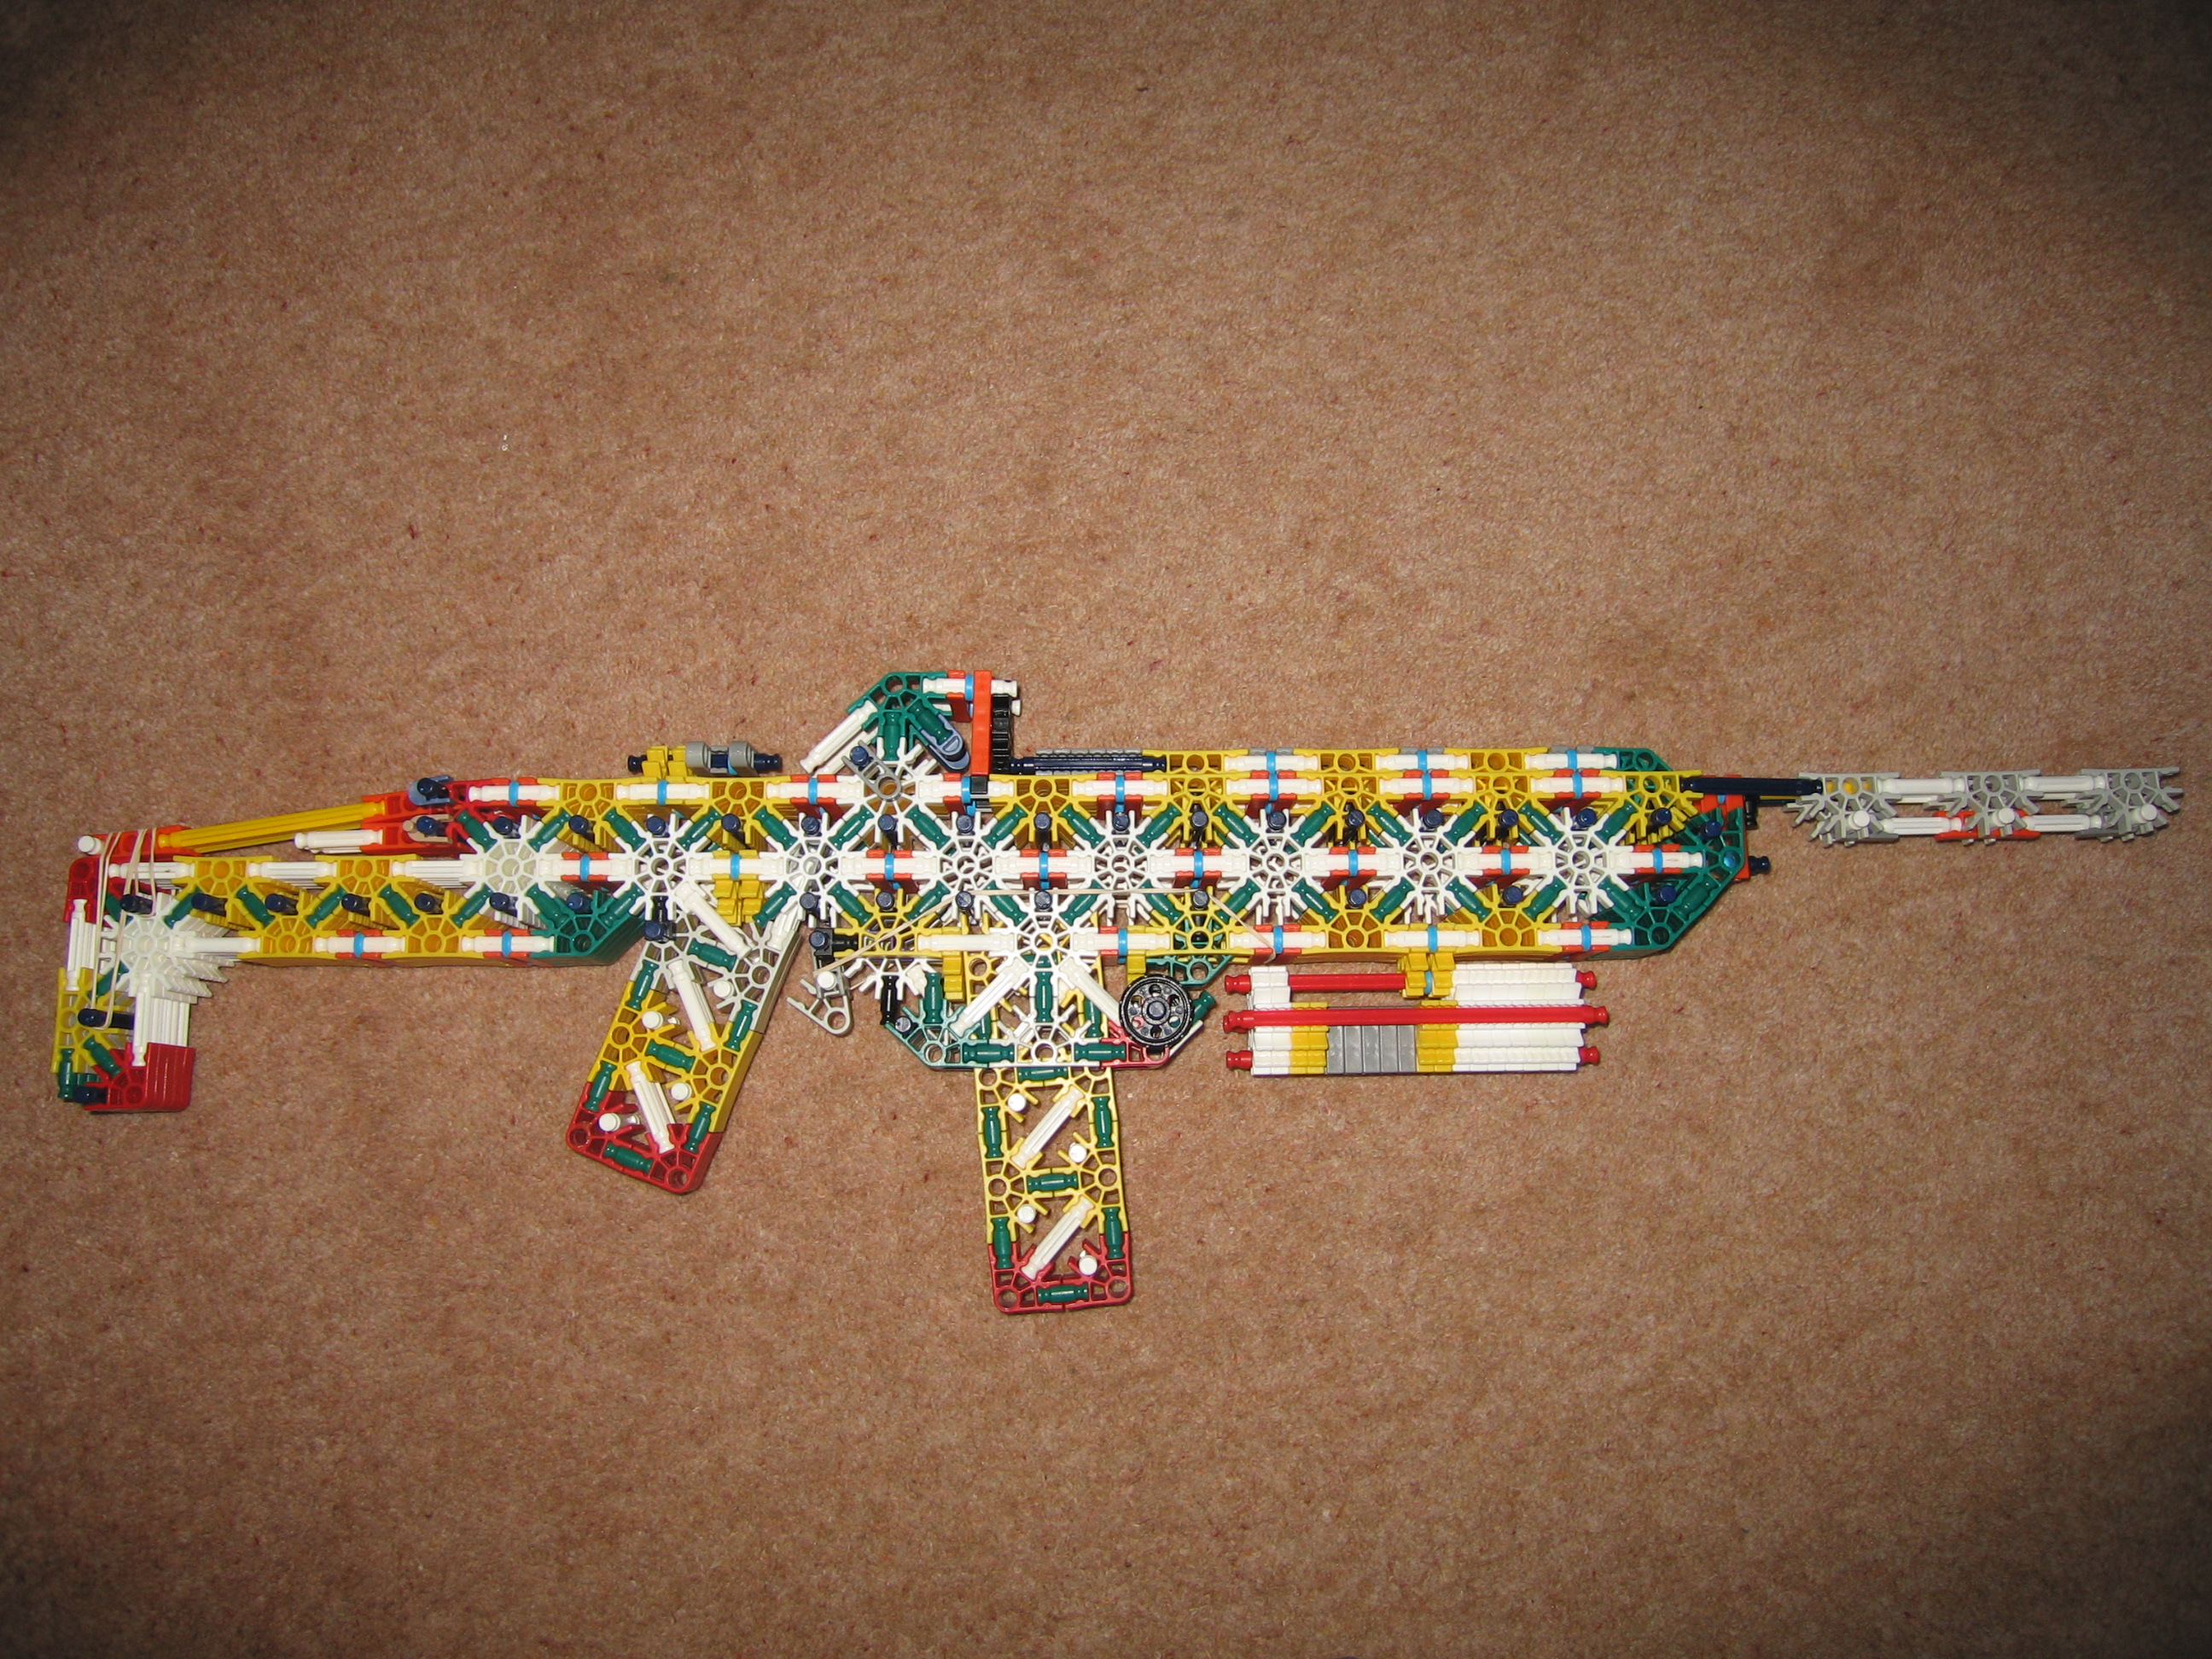 My Knex Remington ACR model